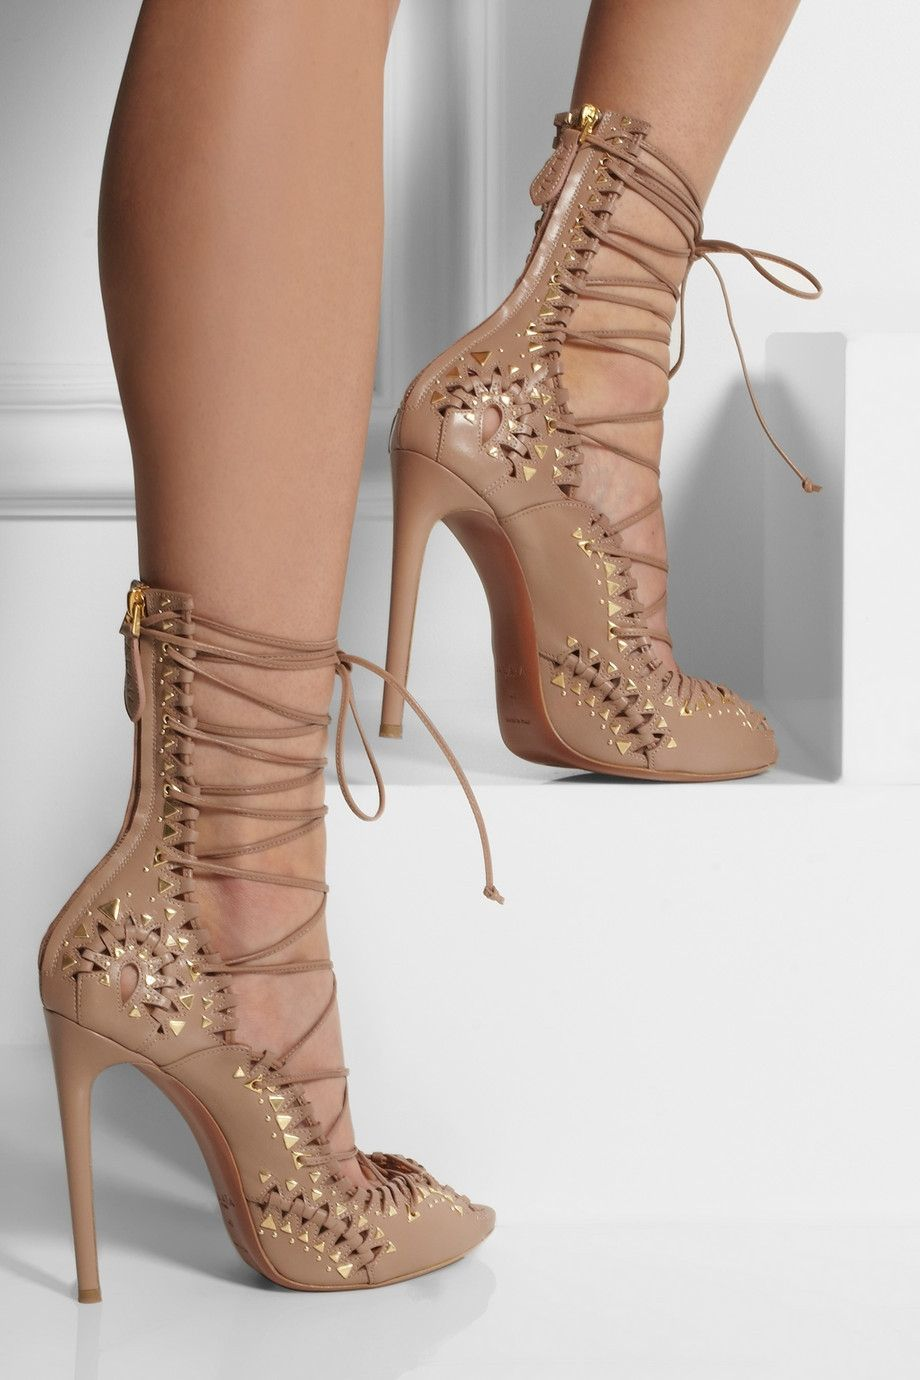 2c9f2b6f7b6 Heel measures approximately inches with a partially concealed slight  platform Taupe leather Gold studs